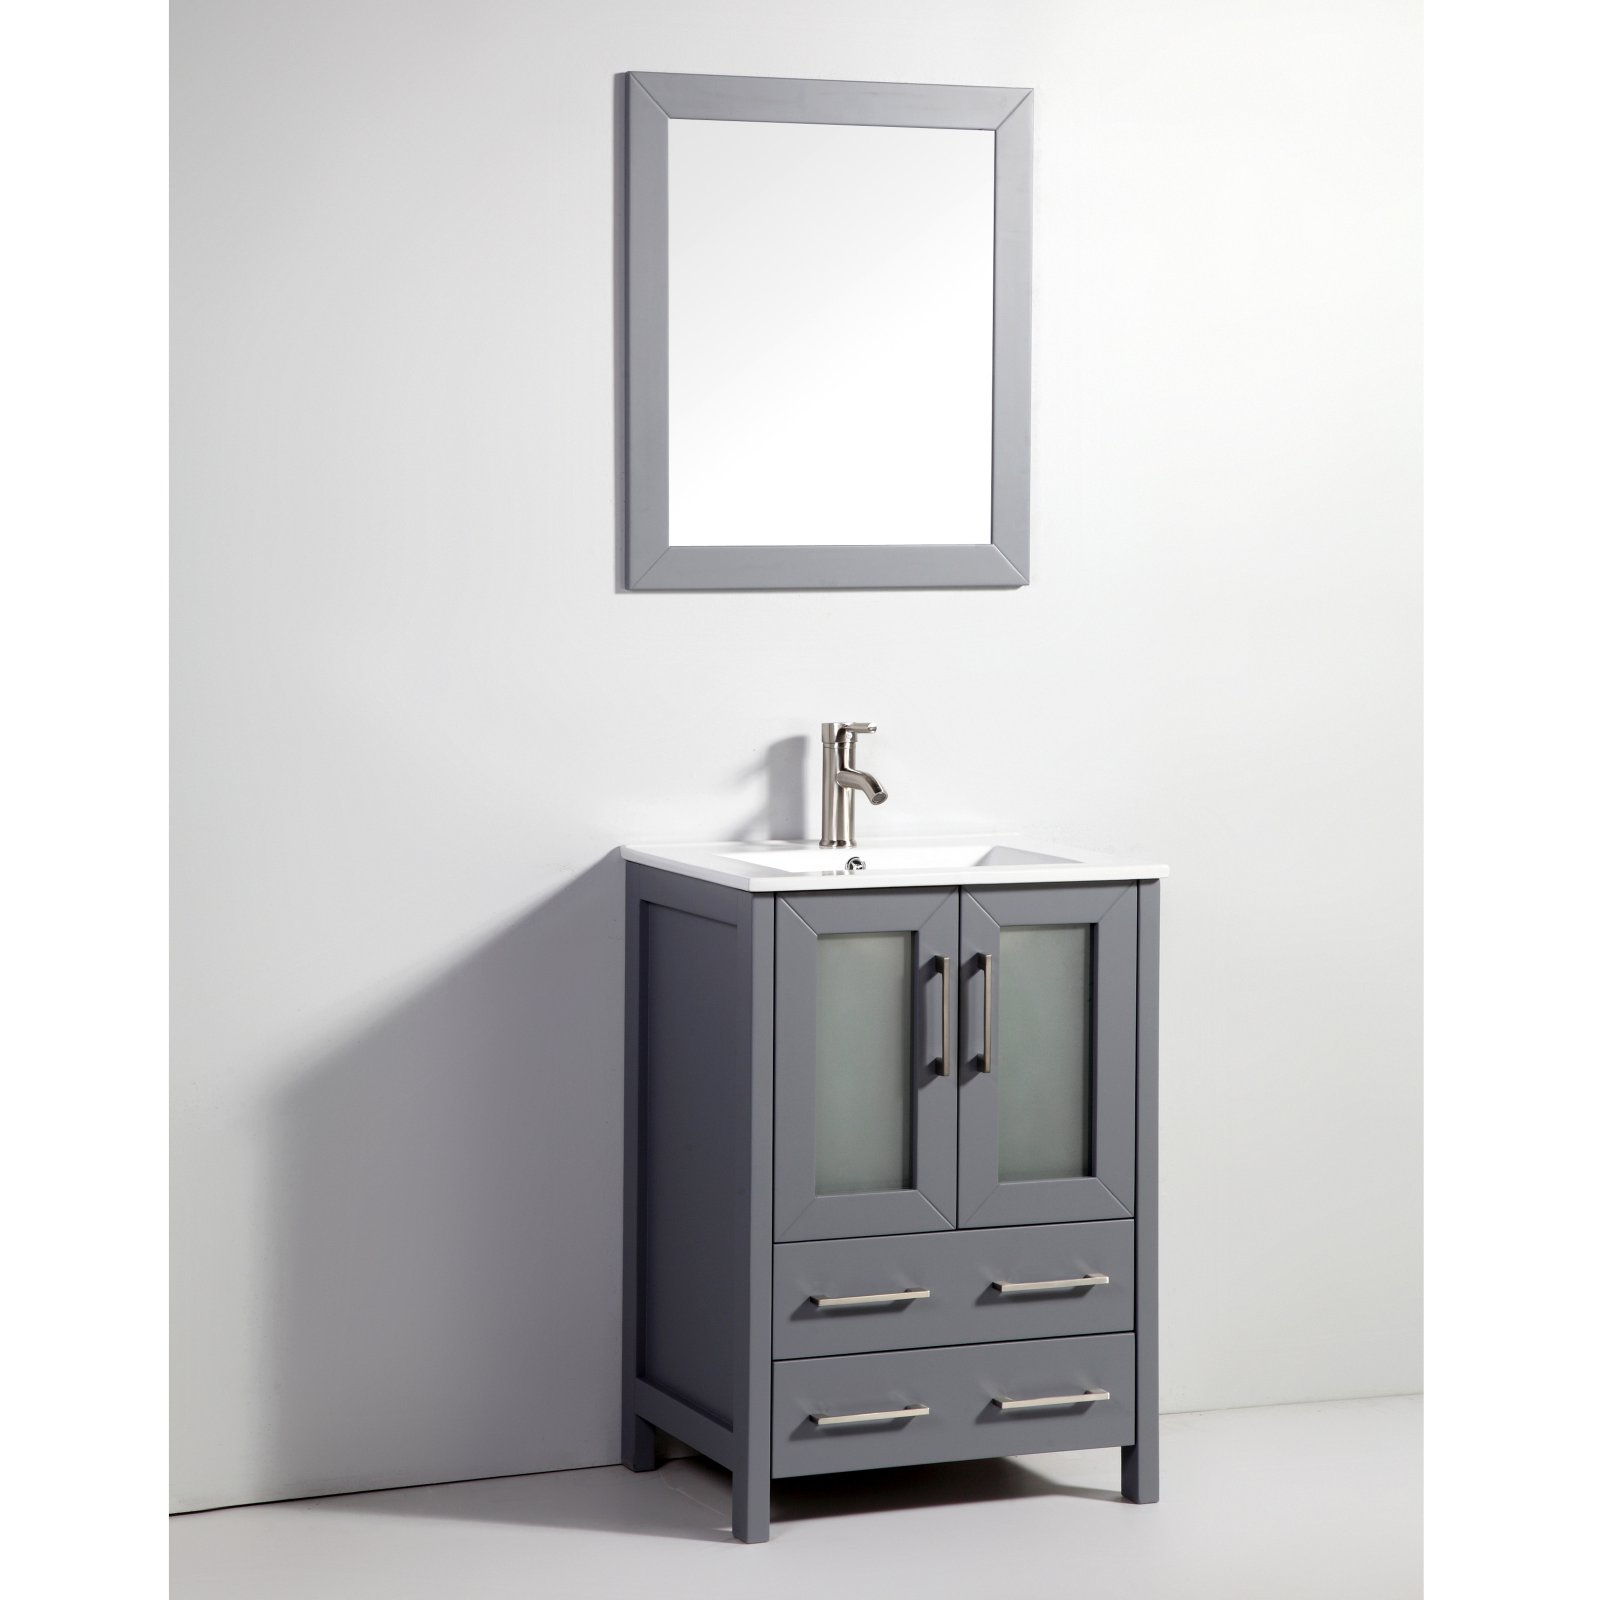 Legion furniture wa79 solid wood single sink vanity with - Walmart bathroom vanities with sink ...